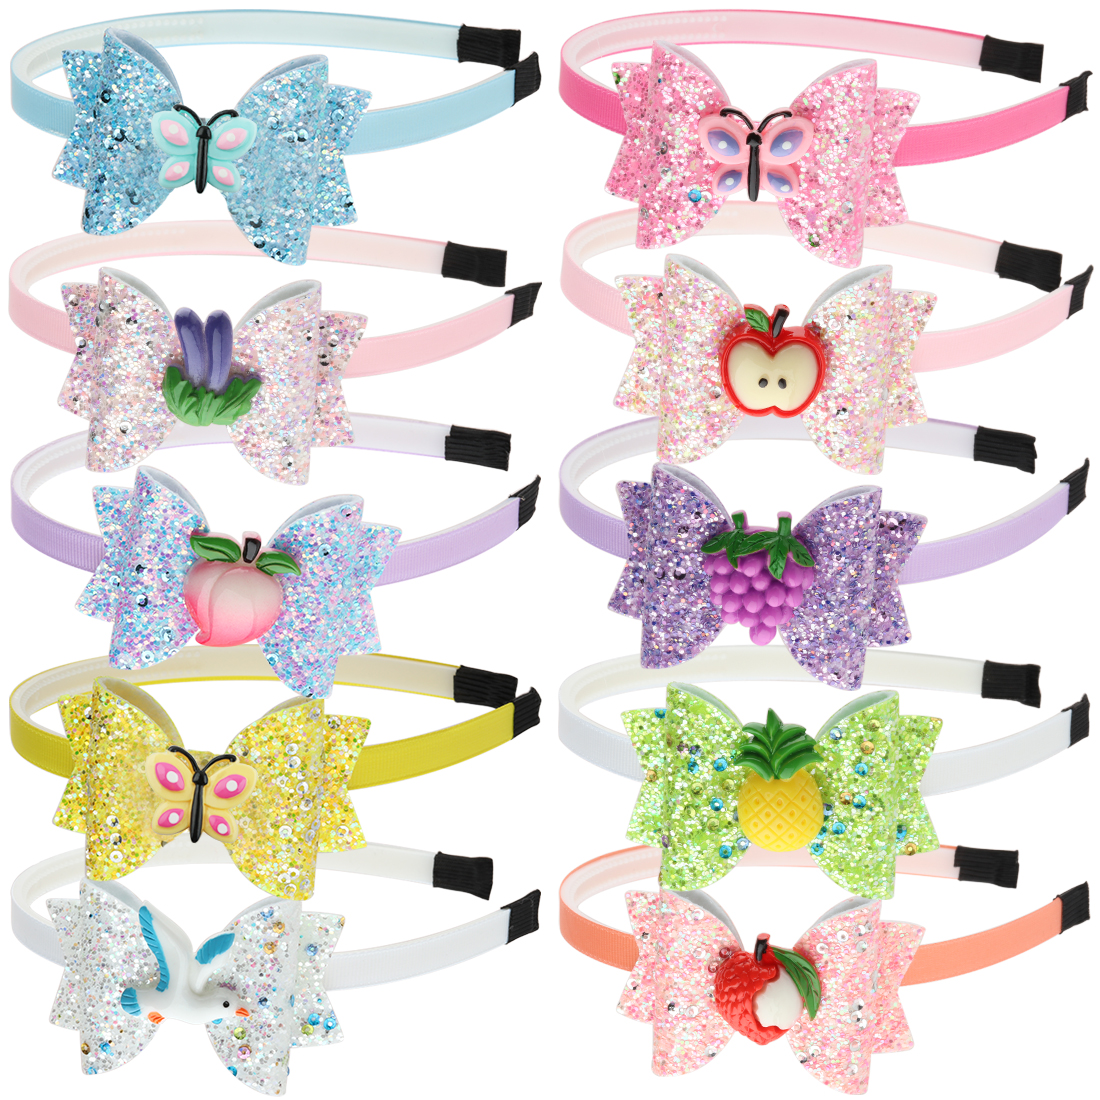 10pcs/set Girls Novelty Hairbands Glitter Sequin Shiny Bows Fruit Apple Resin Design 3 Inch Hair Bow Children Head Hoop